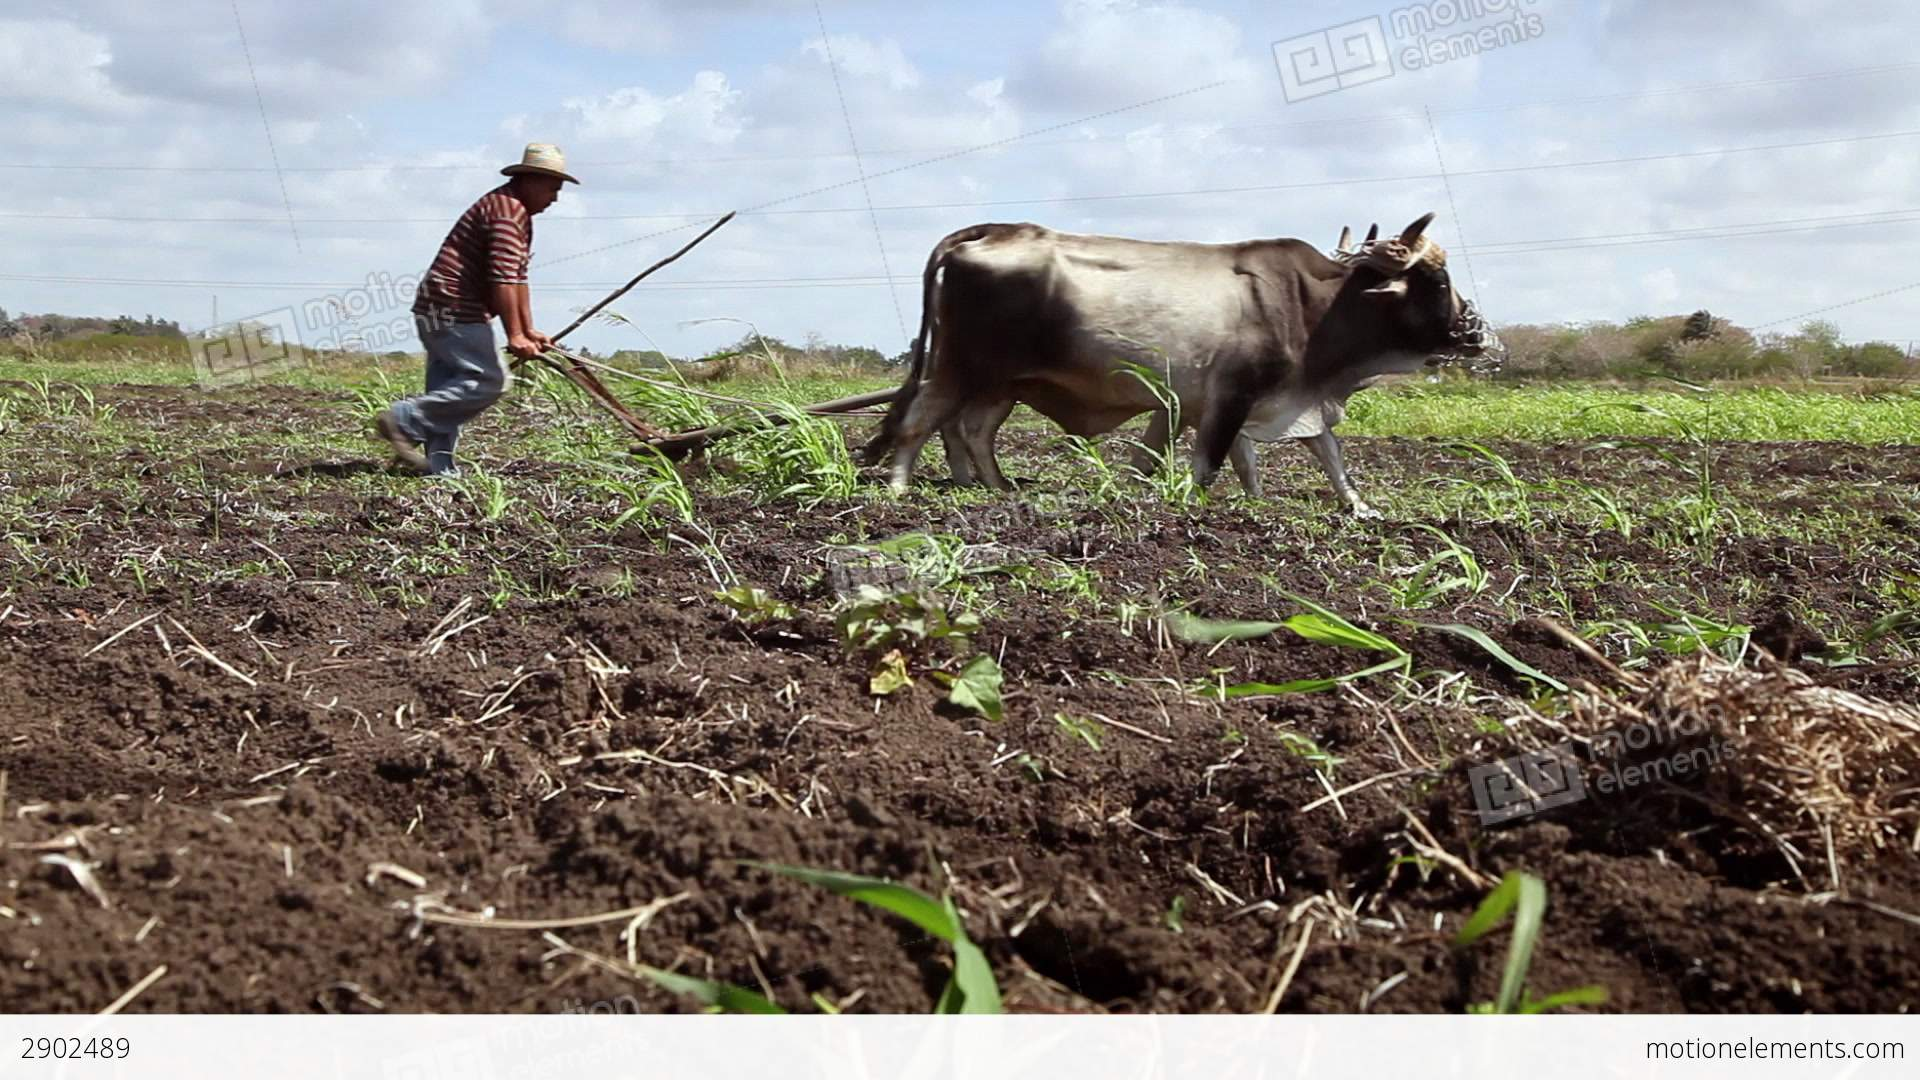 Jesus Live Wallpaper 3d Plow Pulled By Oxen Animals And Man At Work In Farm Stock